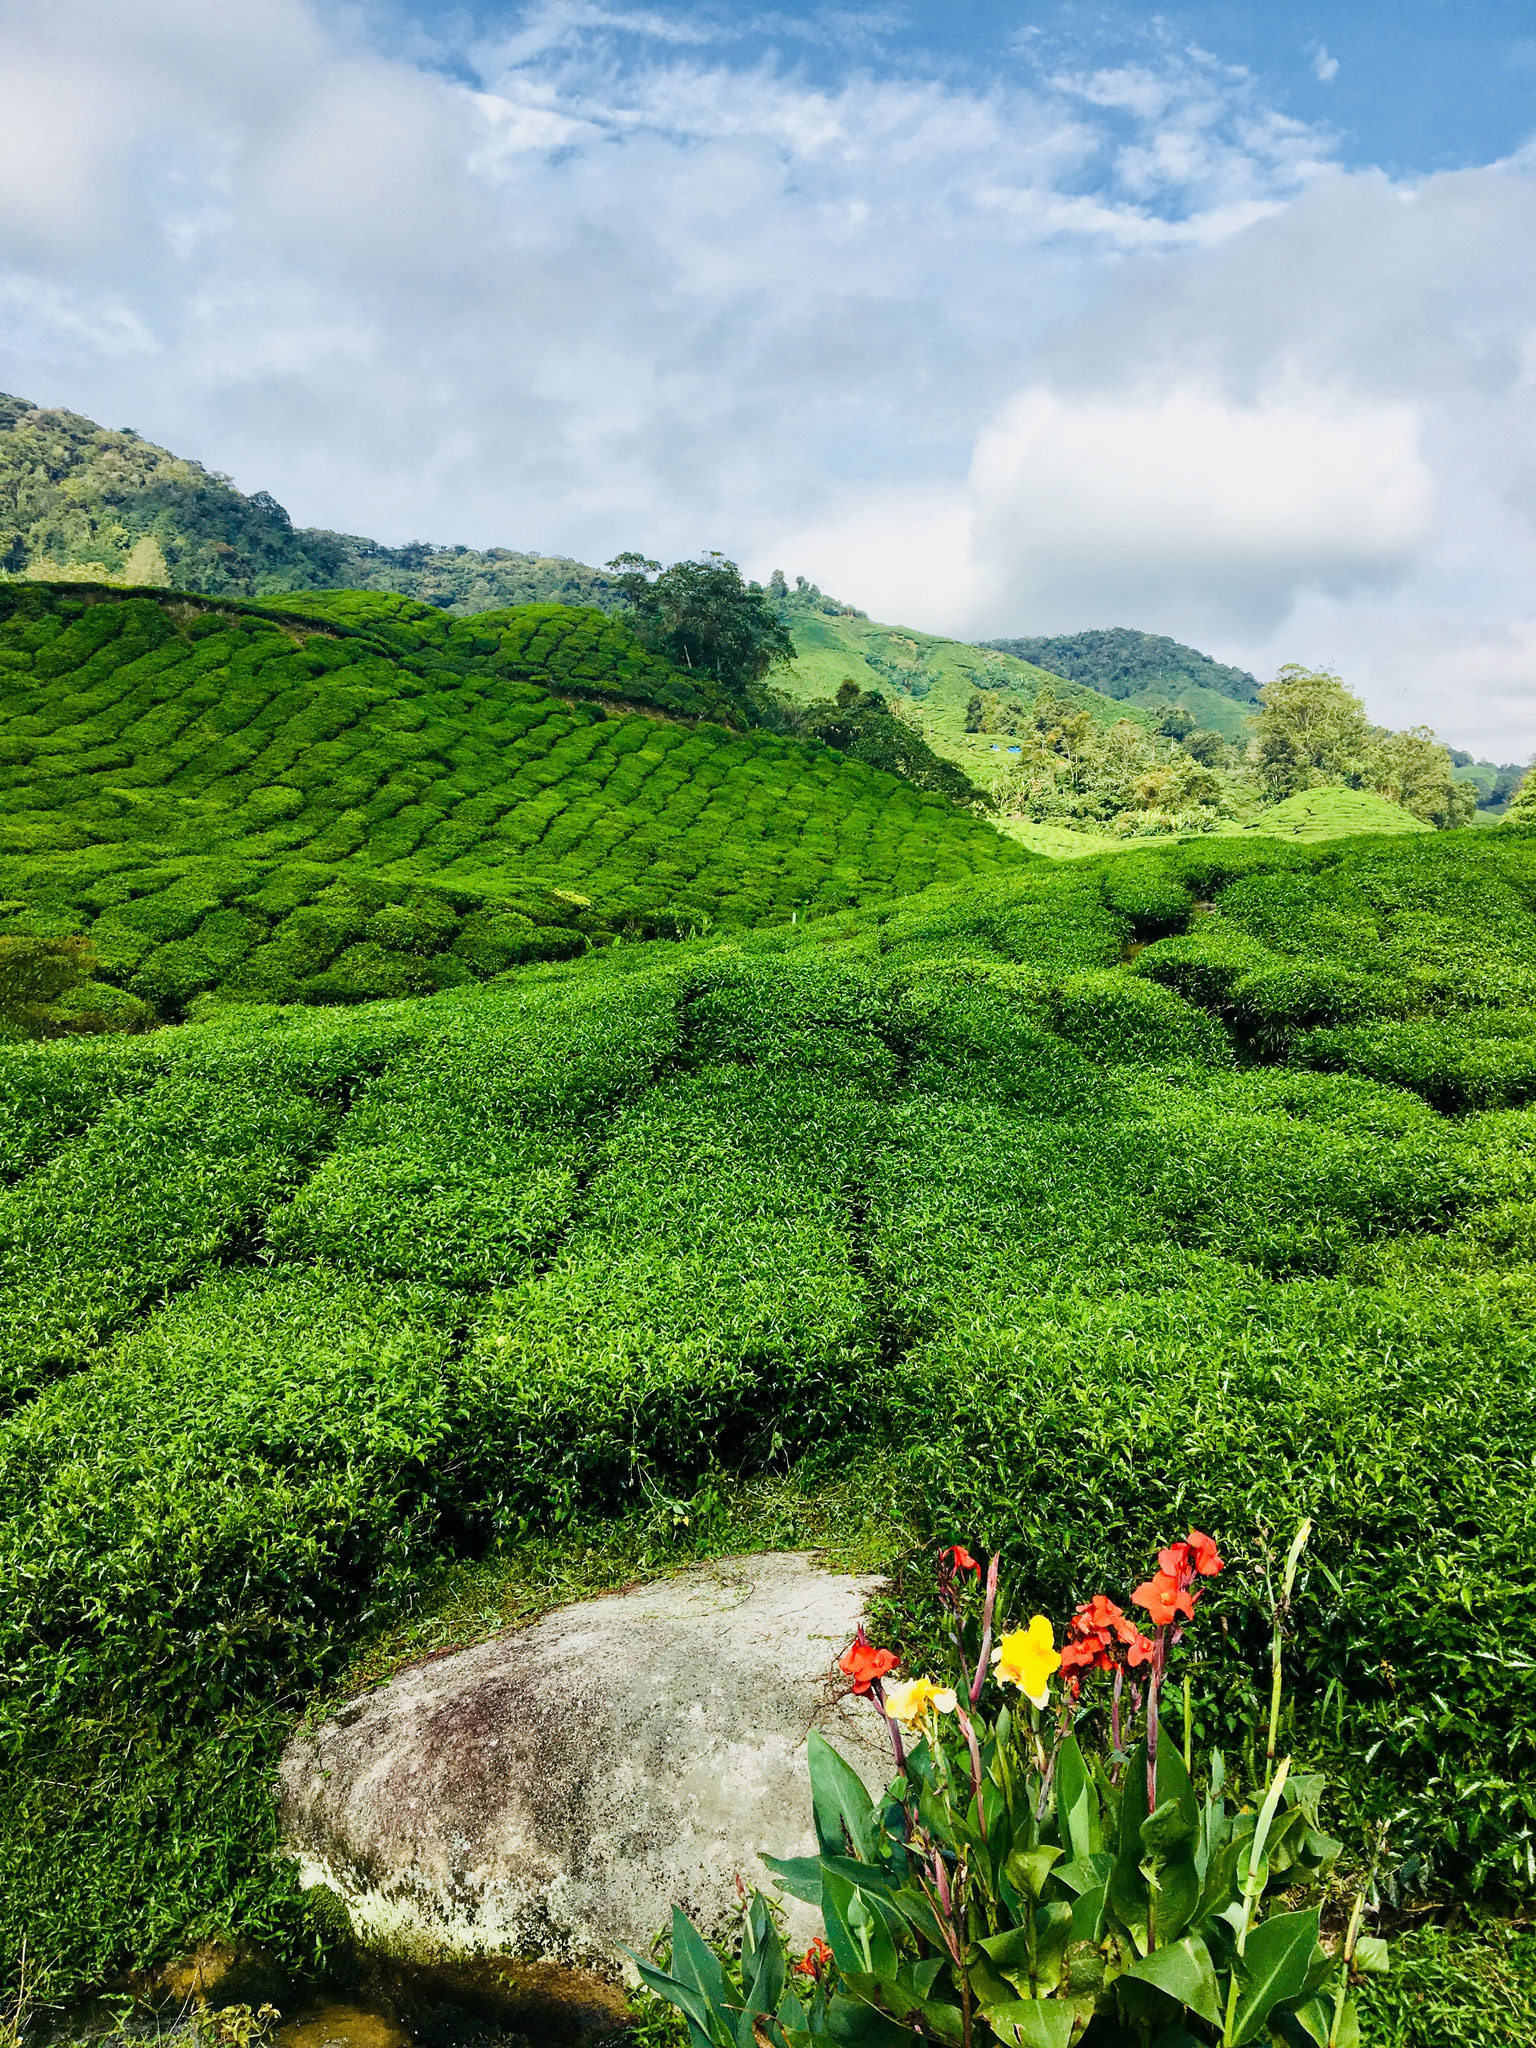 Cameron highlands. Photo credits to Krystle